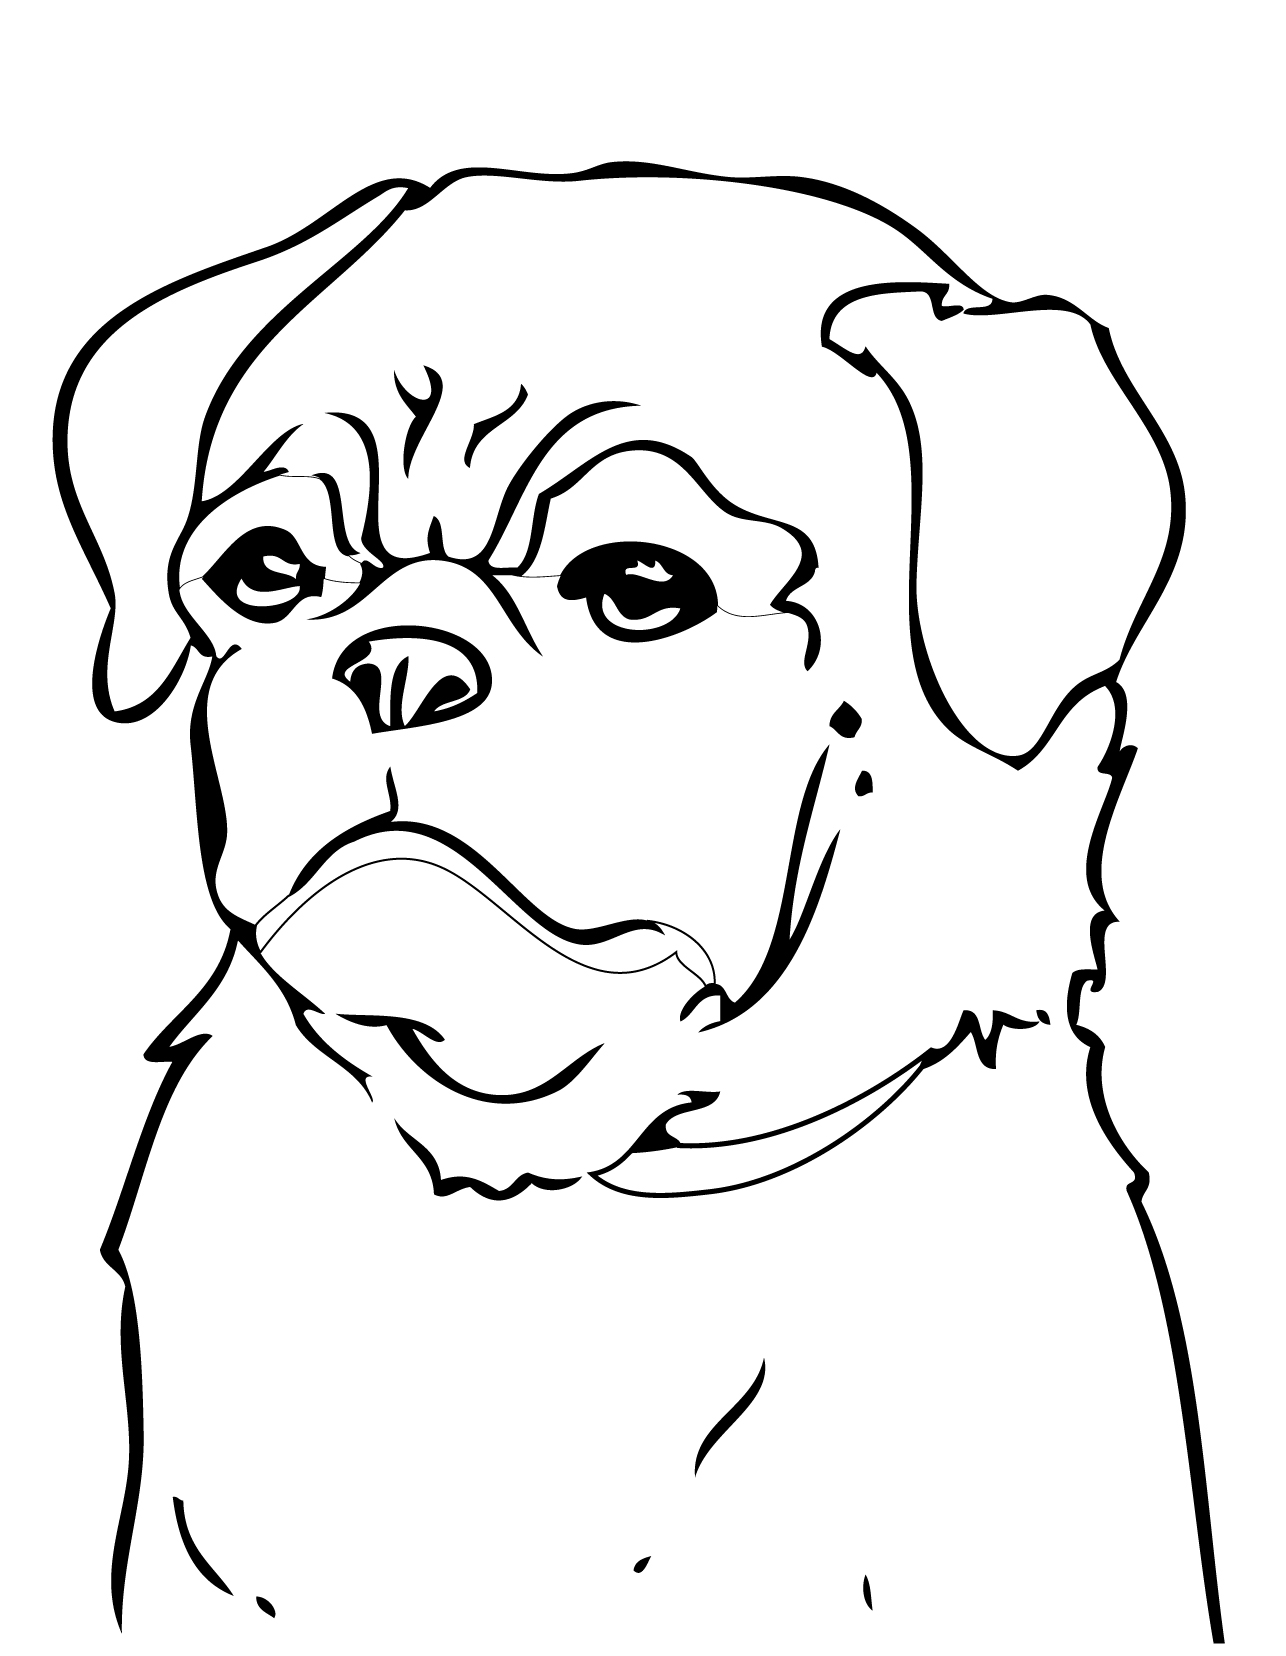 a coloring page of a dog dogs 101 coloring pages download and print for free dog of a coloring a page